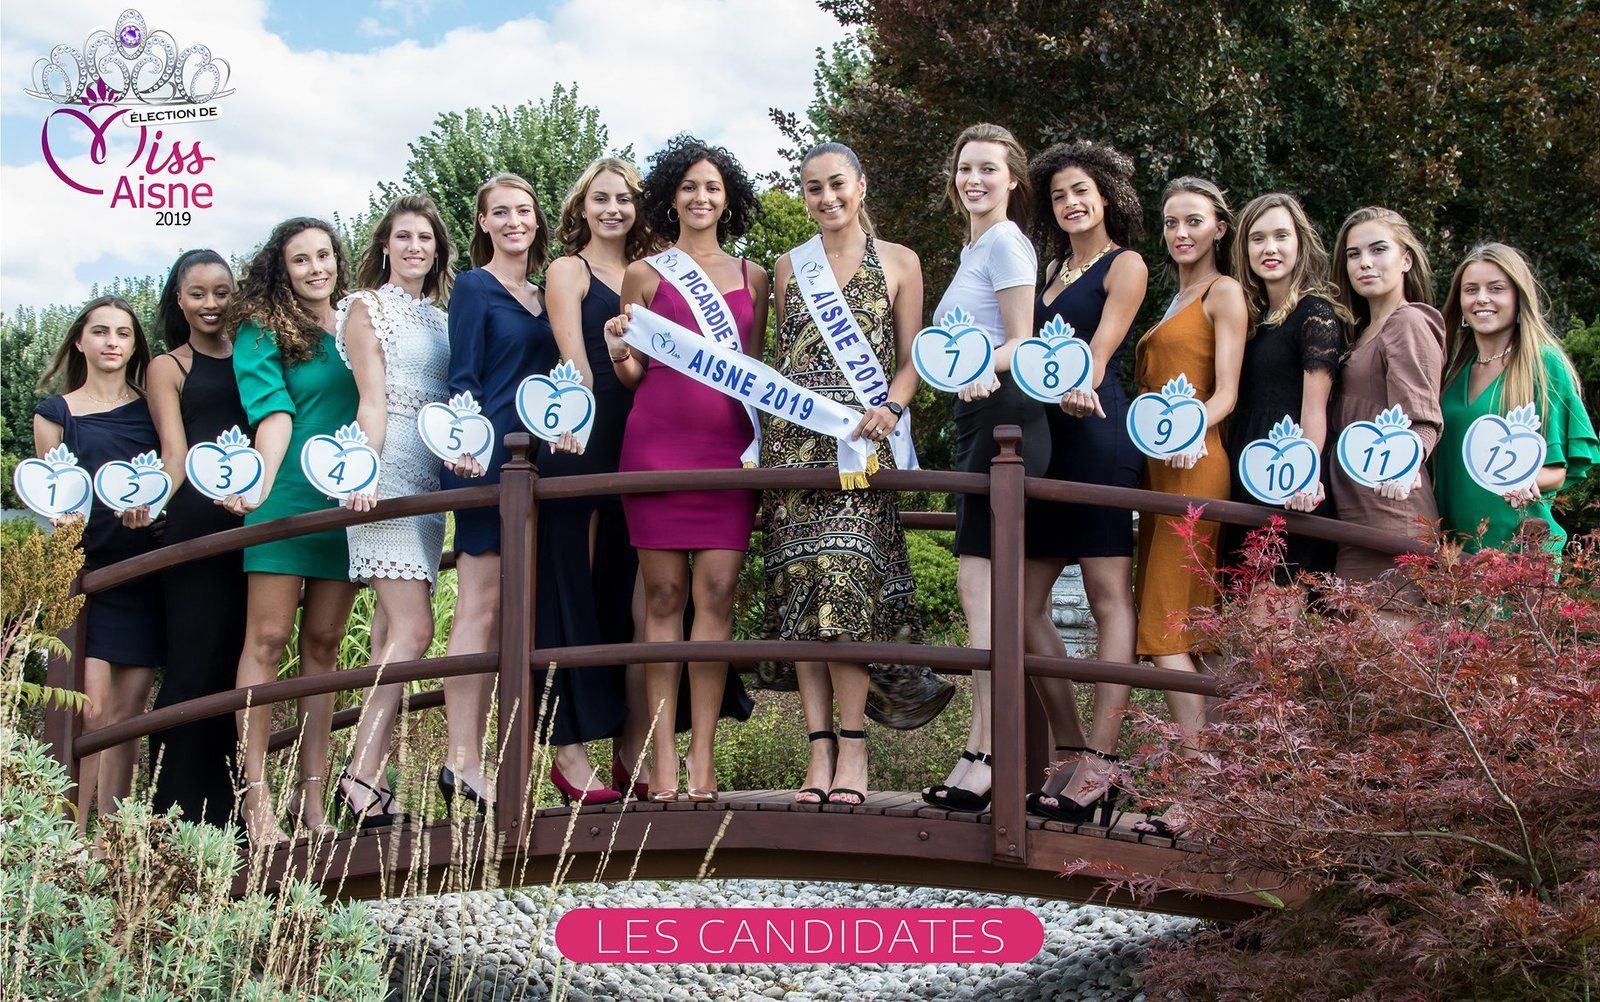 Photo comité Miss Aisne 2019.